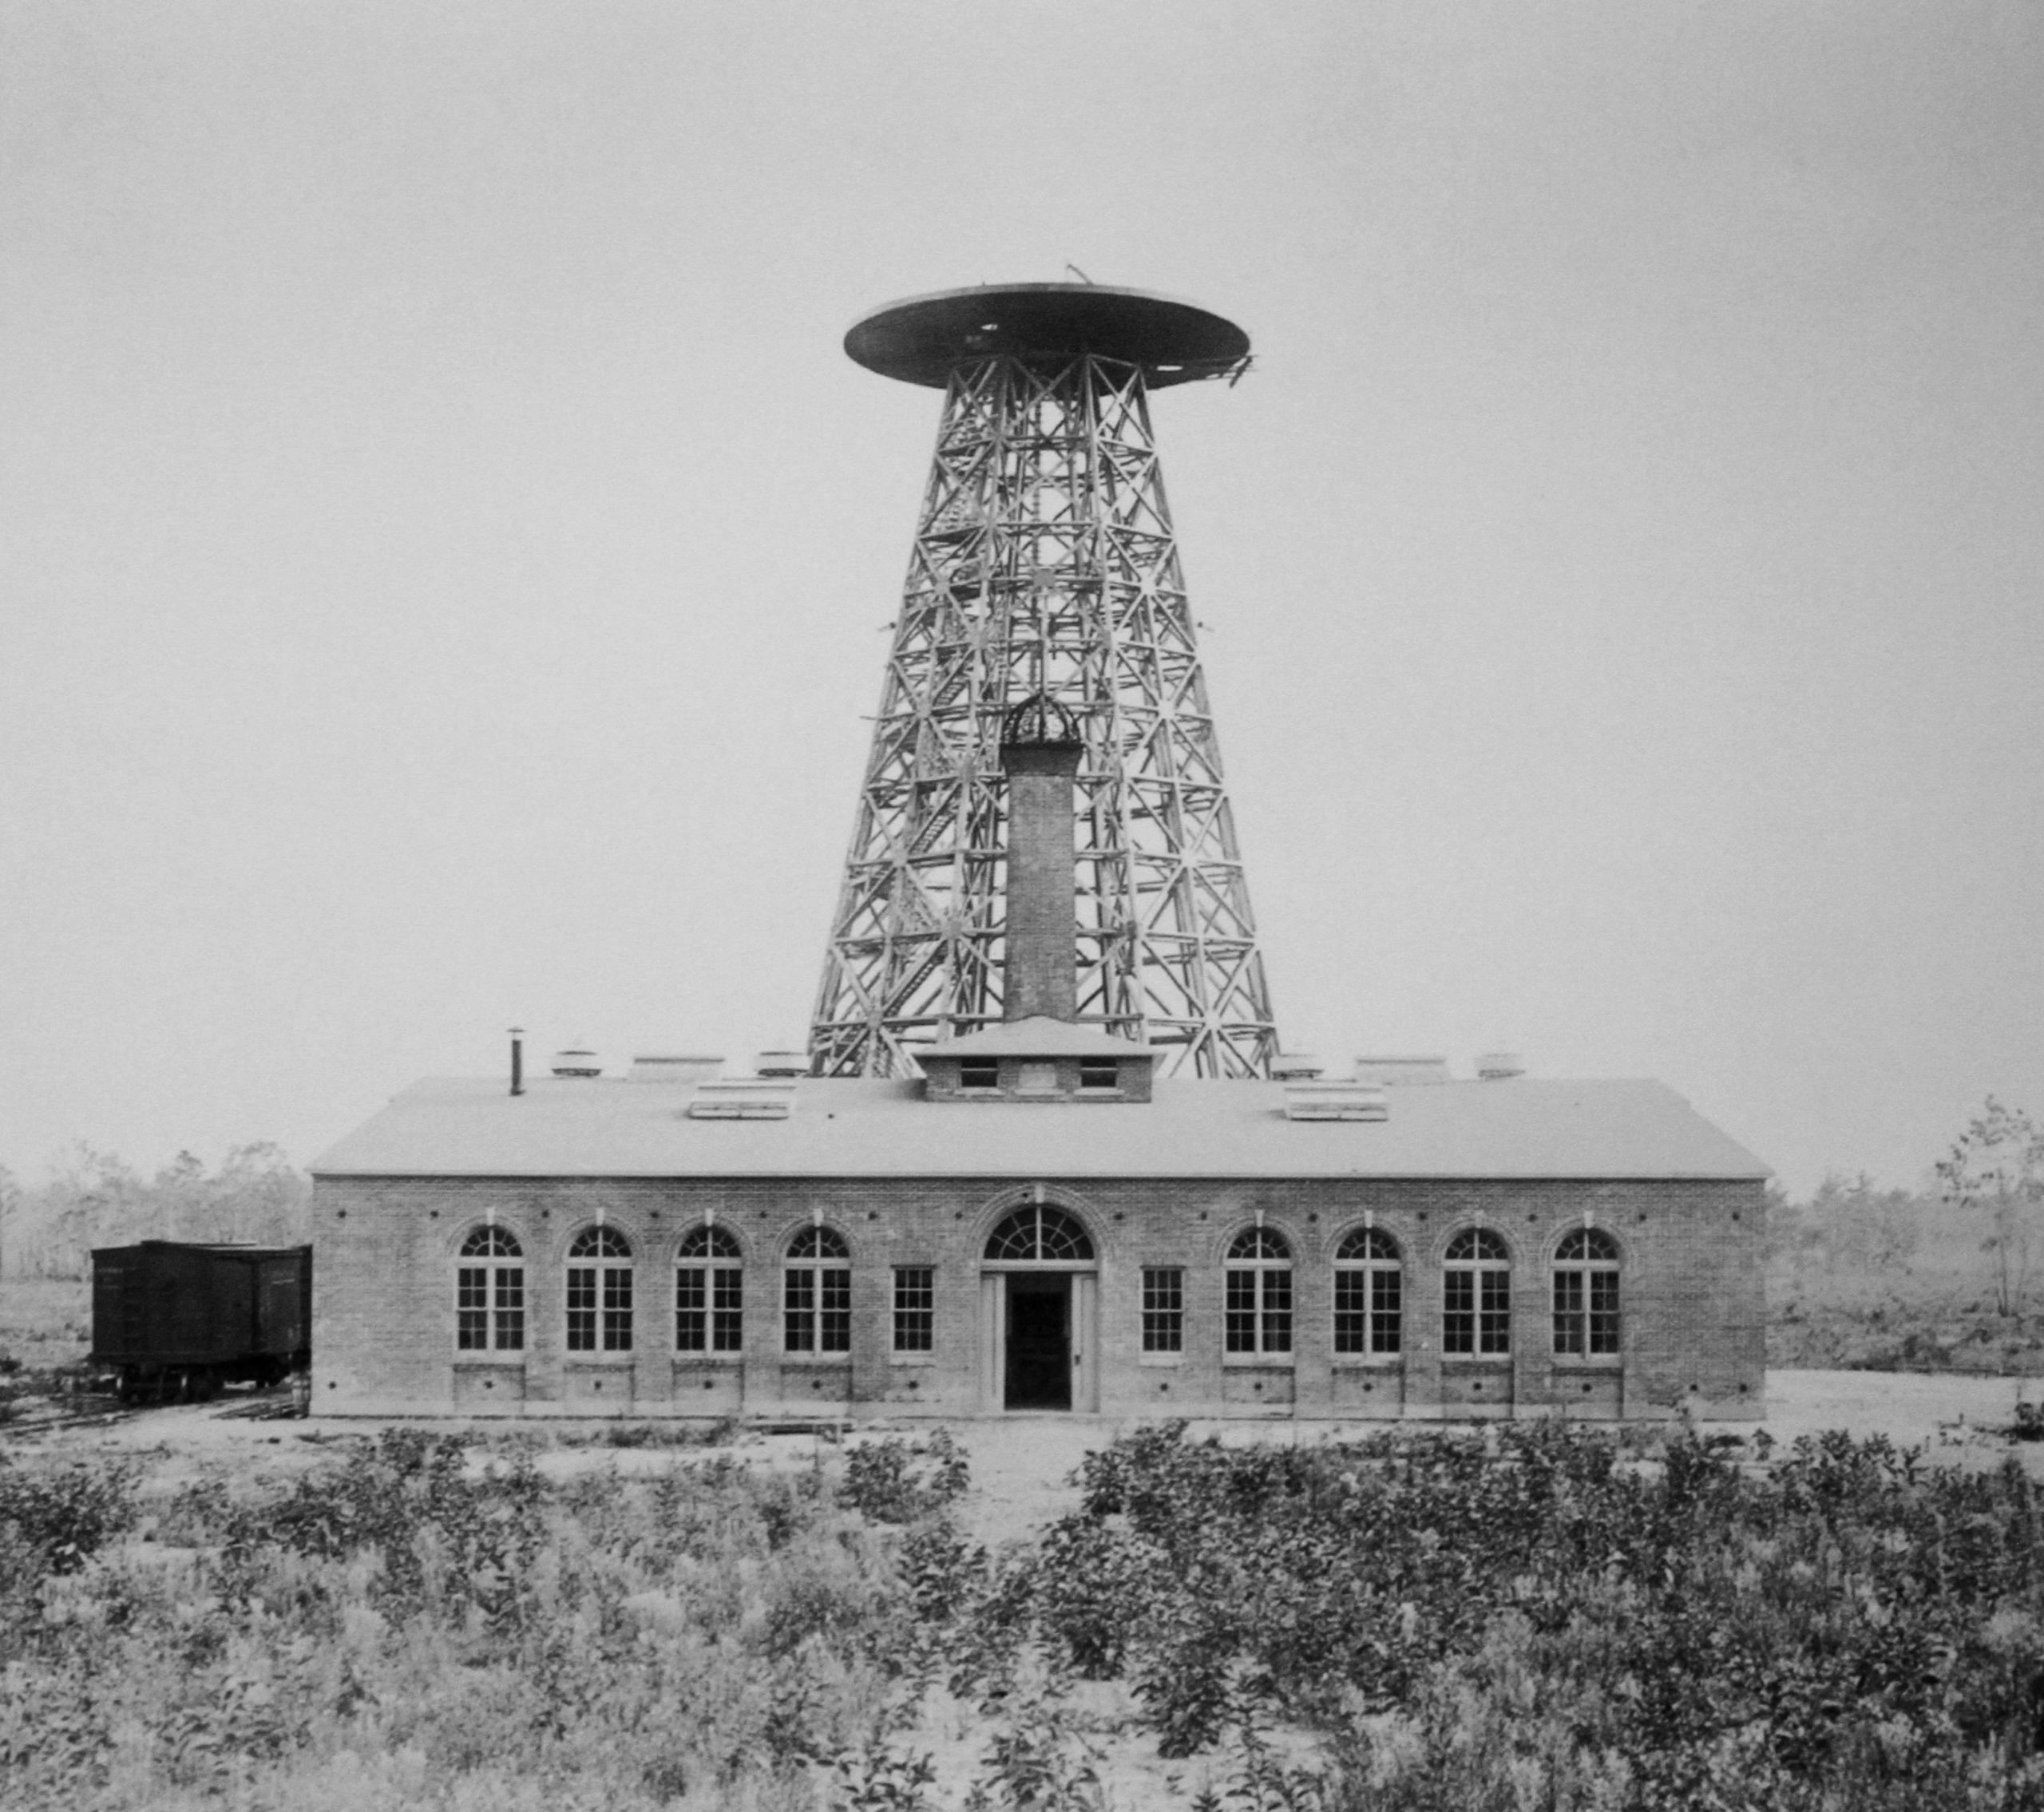 File:Wardenclyffe Tower.jpg